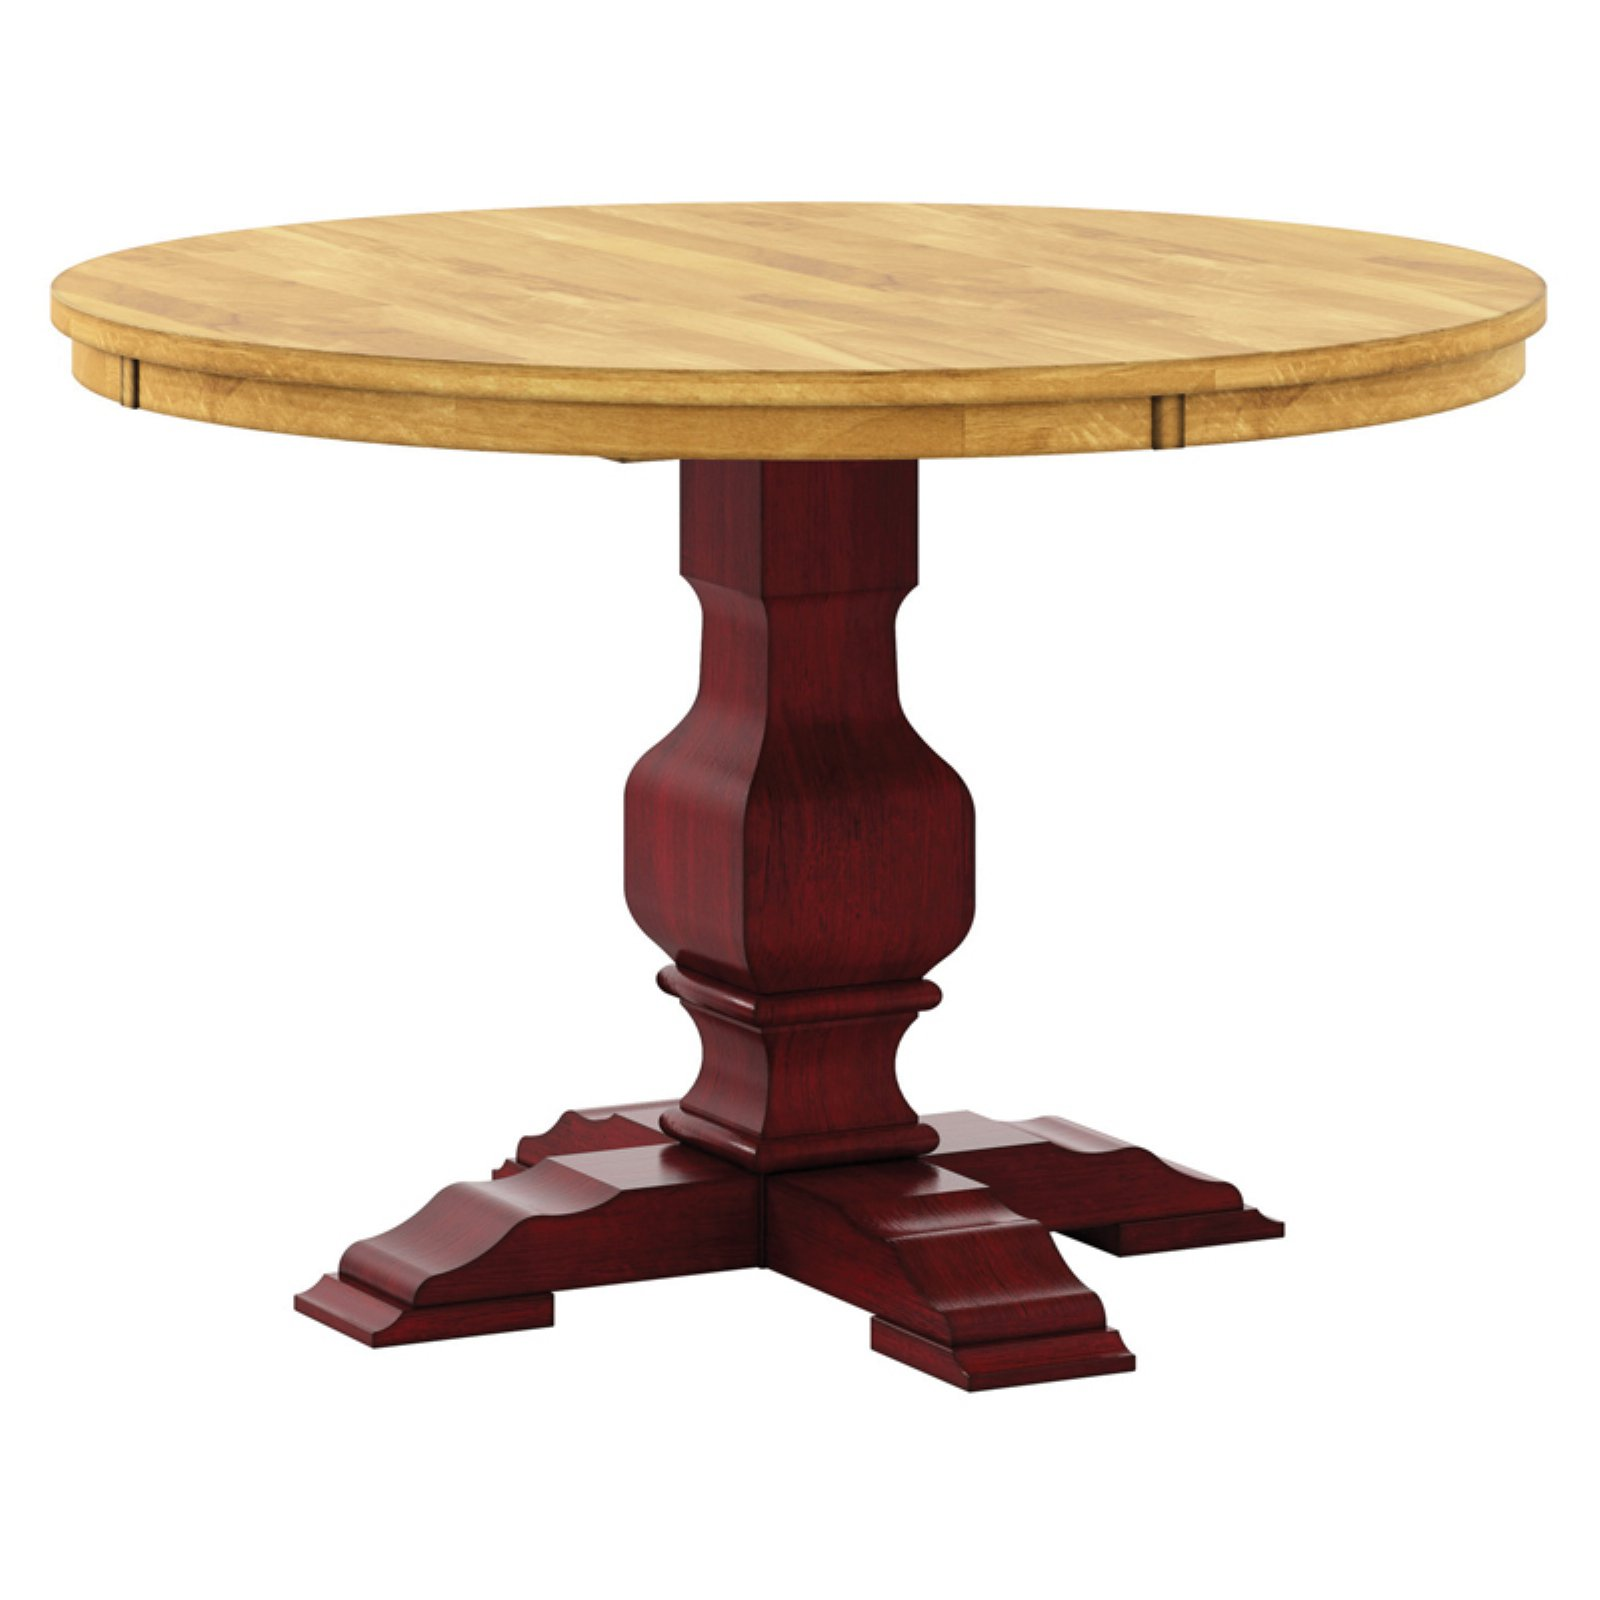 Weston Home 45 in. Round Dining Table